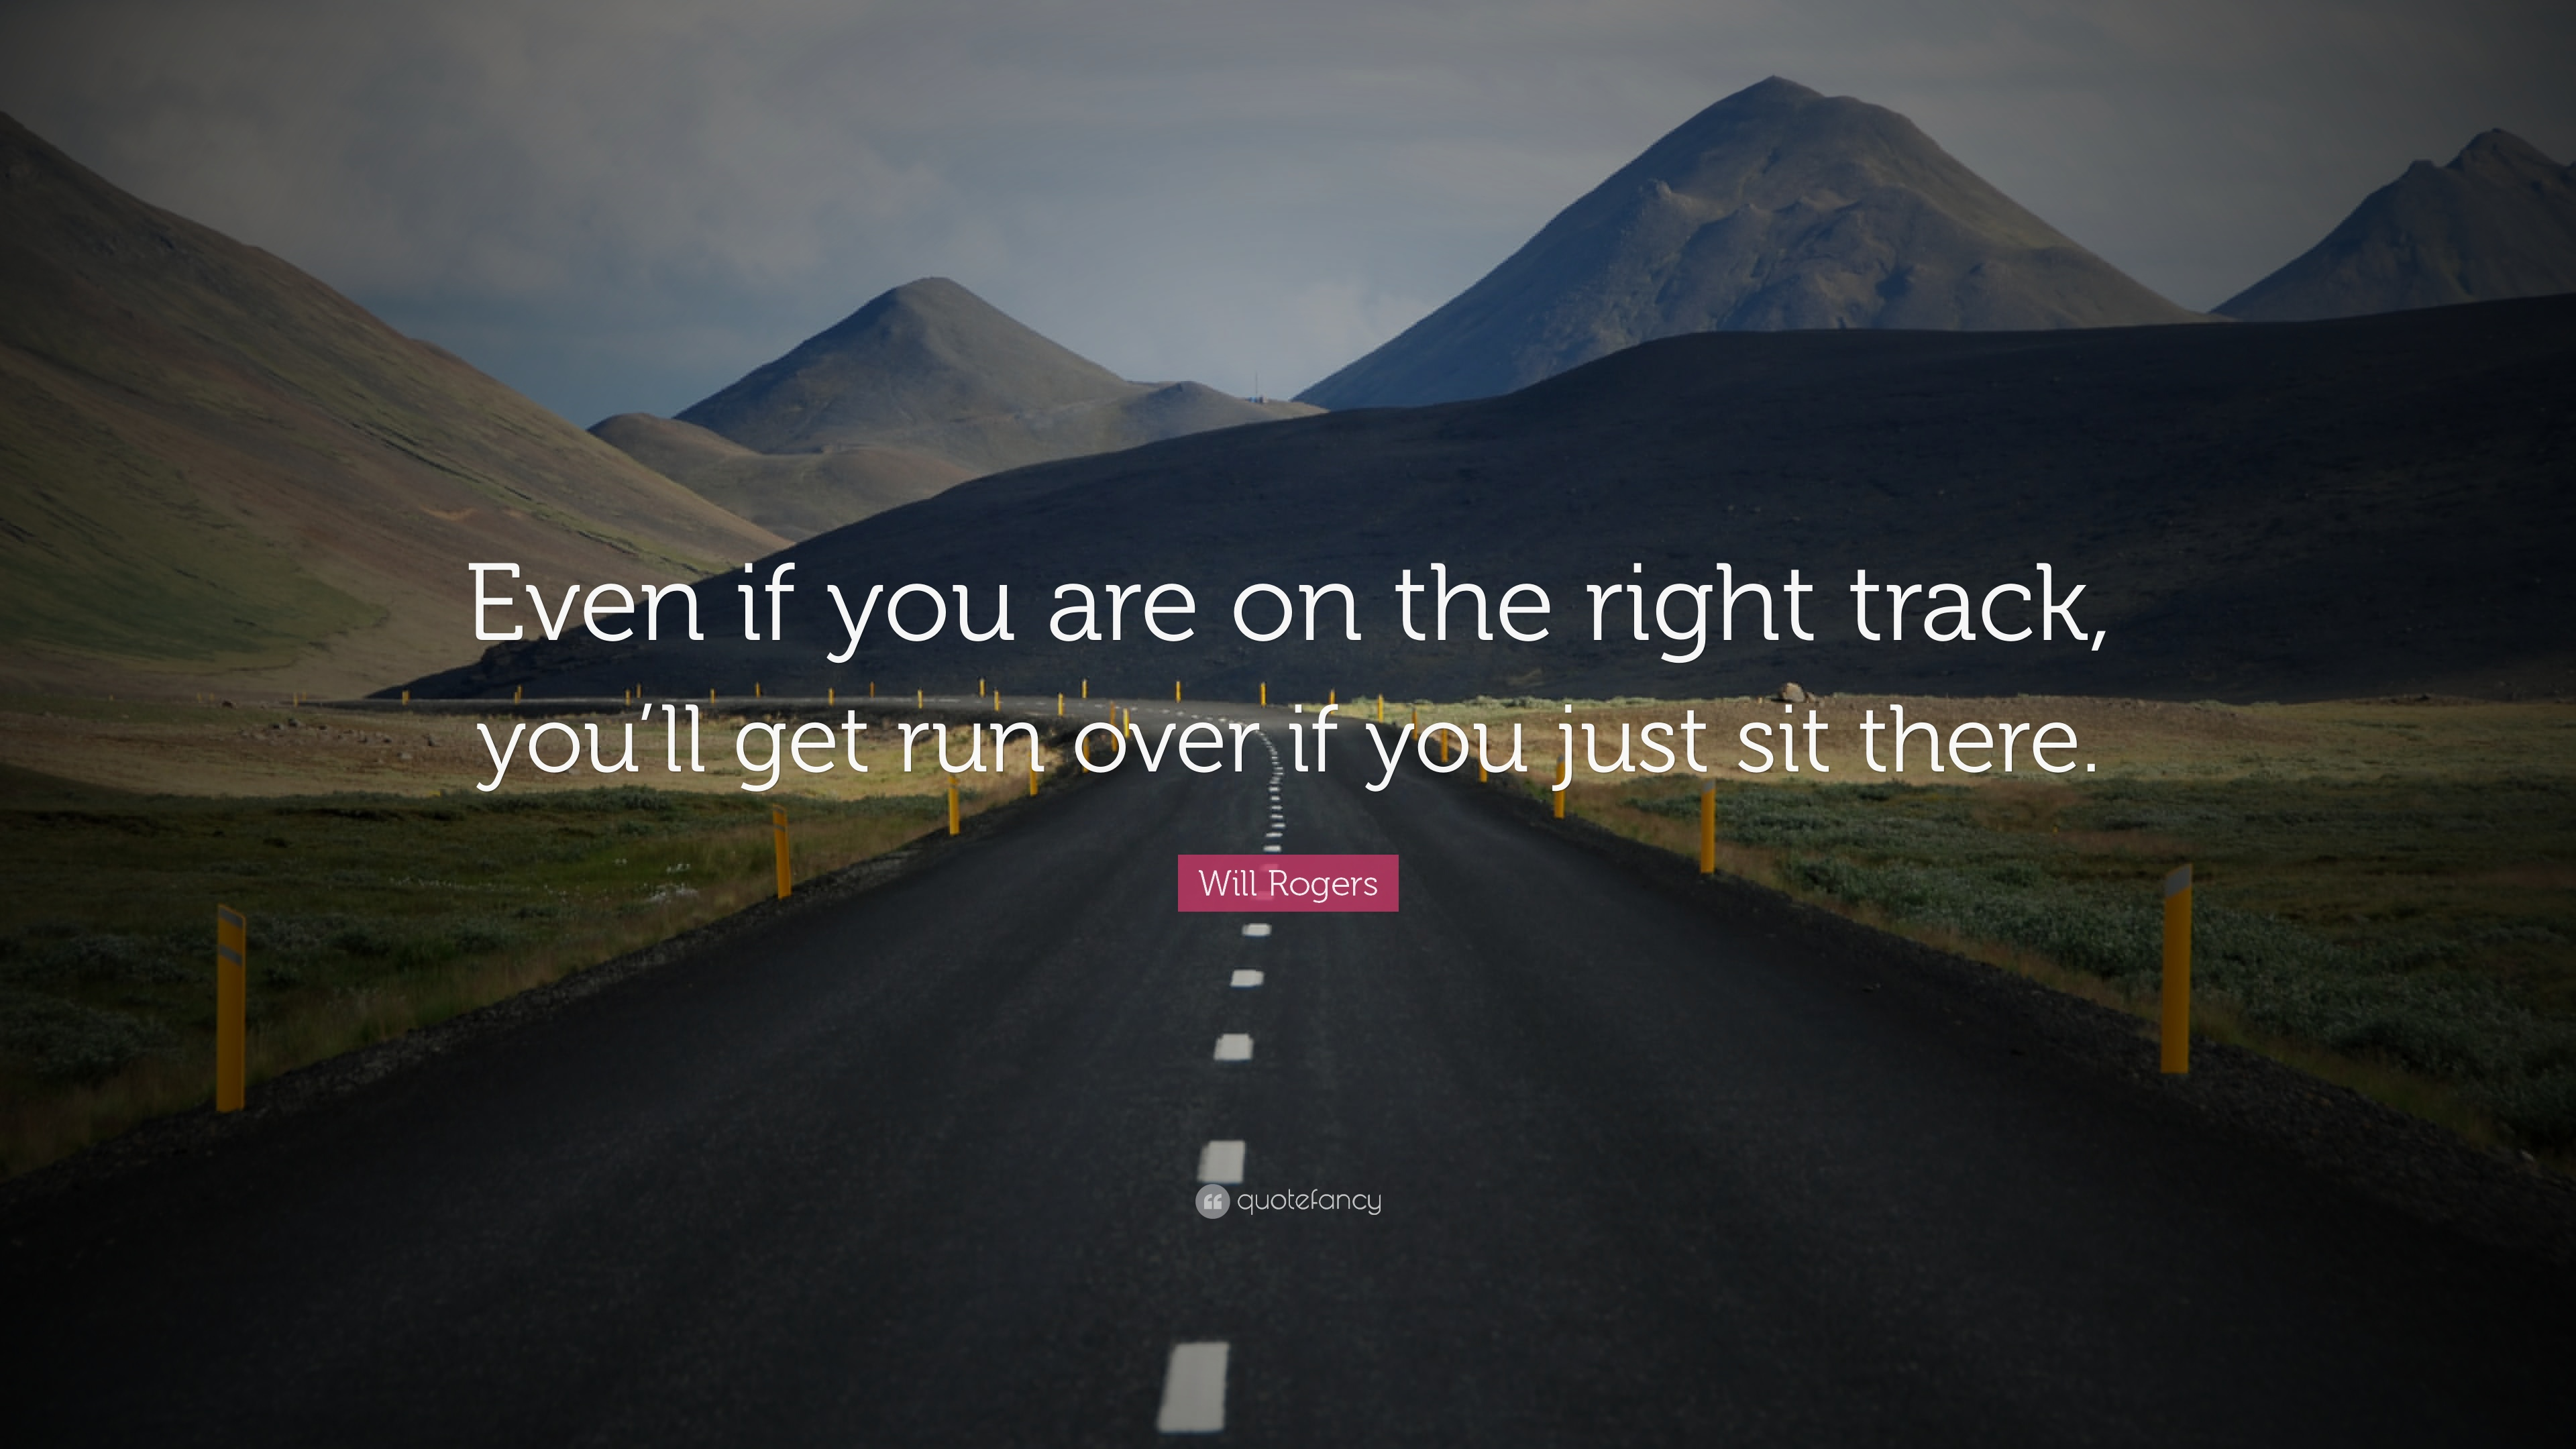 Positive Quotes Even If You Are On The Right Track Youll